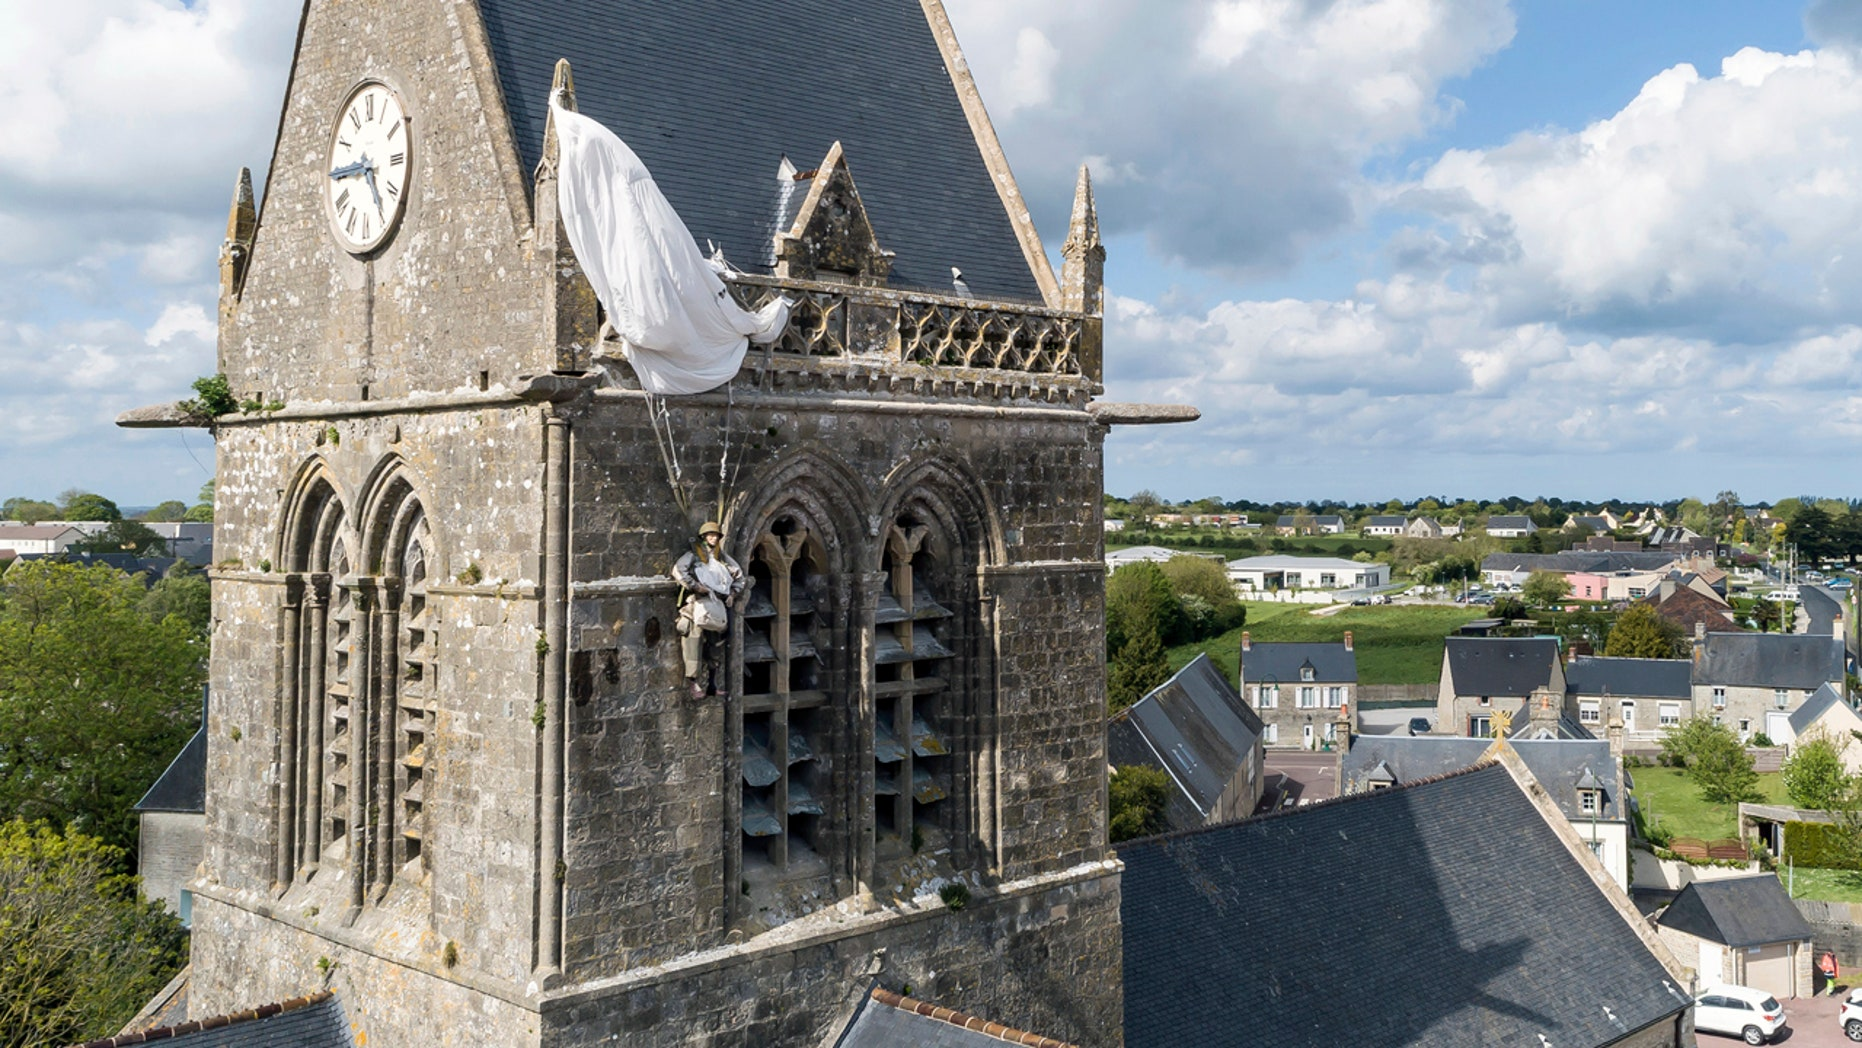 In this photo taken with a drone, a dummy paratrooper representing a WWII paratrooper from the 82nd Airborne hangs on the bell tower of the church of Sainte Mere Eglise, in Normandy, France, Thursday, May 9, 2019. Seventy-five years ago, American paratrooper John Steele dangled from a clock tower in Sainte-Mere-Eglise after his parachute got caught during the D-Day invasion, and survived. (AP Photo/David Vincent)